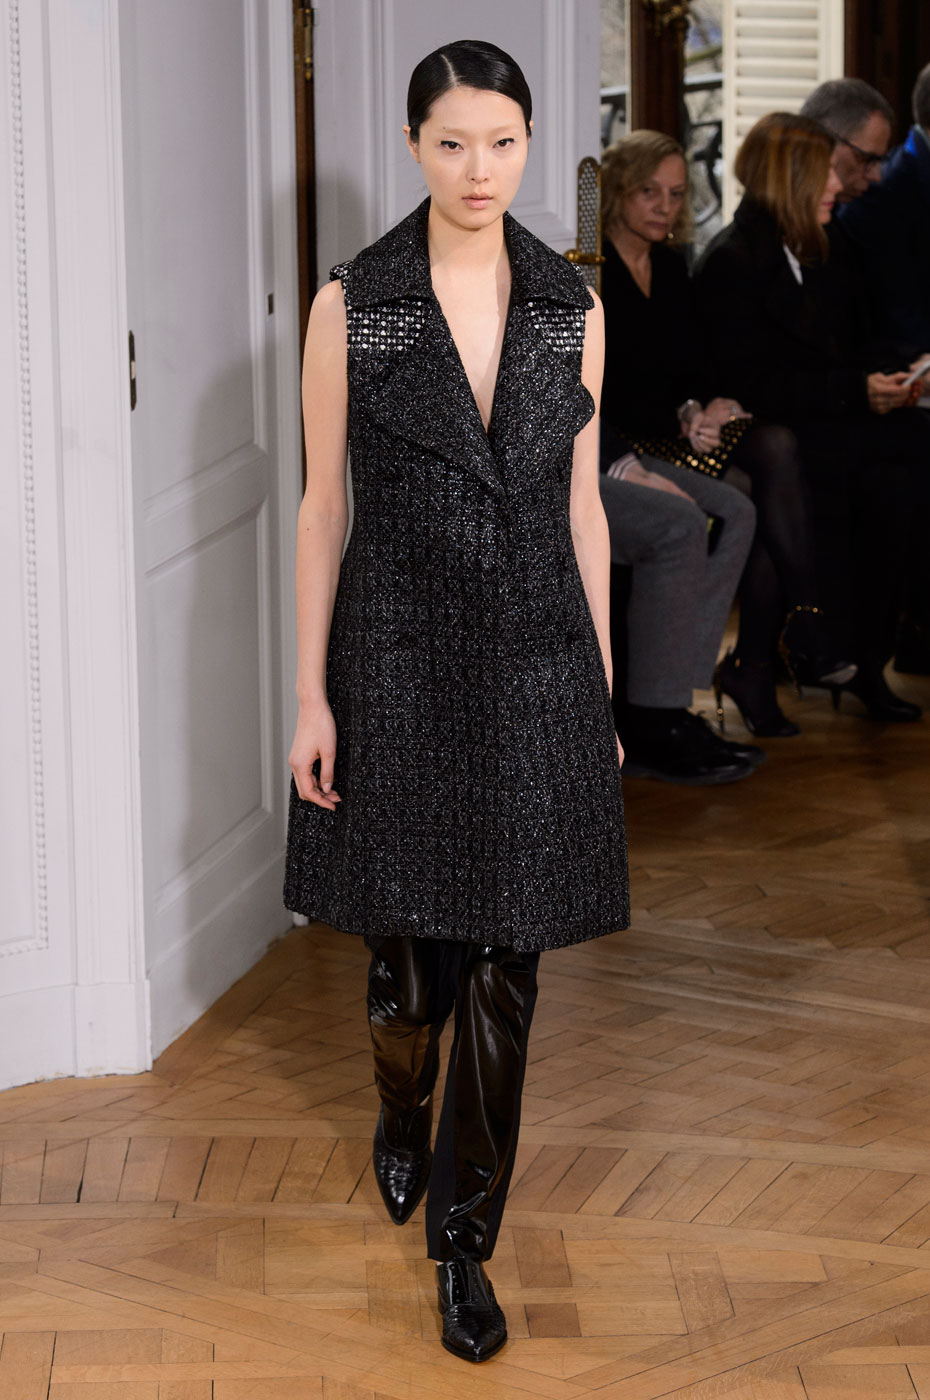 Bouchra-Jarrar-fashion-runway-show-haute-couture-paris-spring-summer-2015-the-impression-35